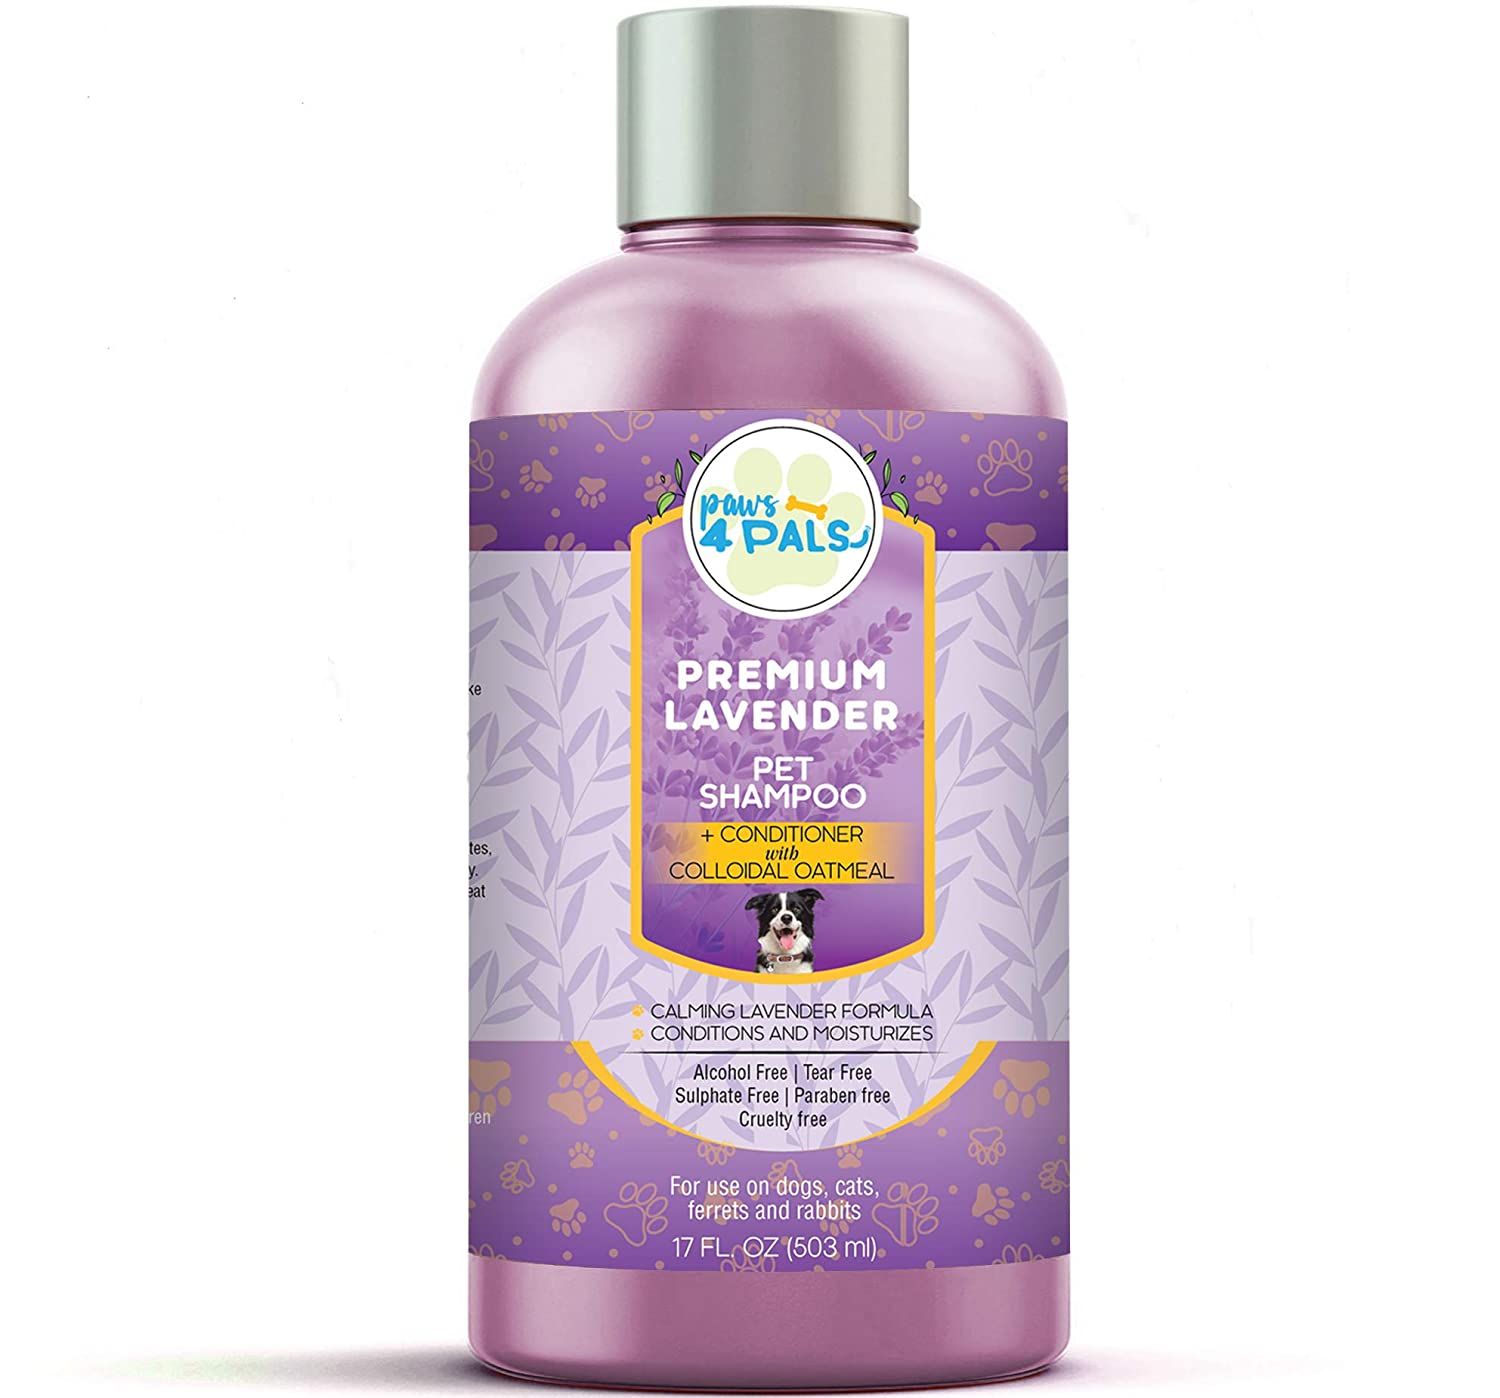 Paws4Pals All Natural Organic Pet Lavender Shampoo+Conditioner With Colloidal Oatmeal[17oz] For Dogs & Cats-Clinical Formula For Dry Sensitive Skin-Hypoallergenic & Soap Free